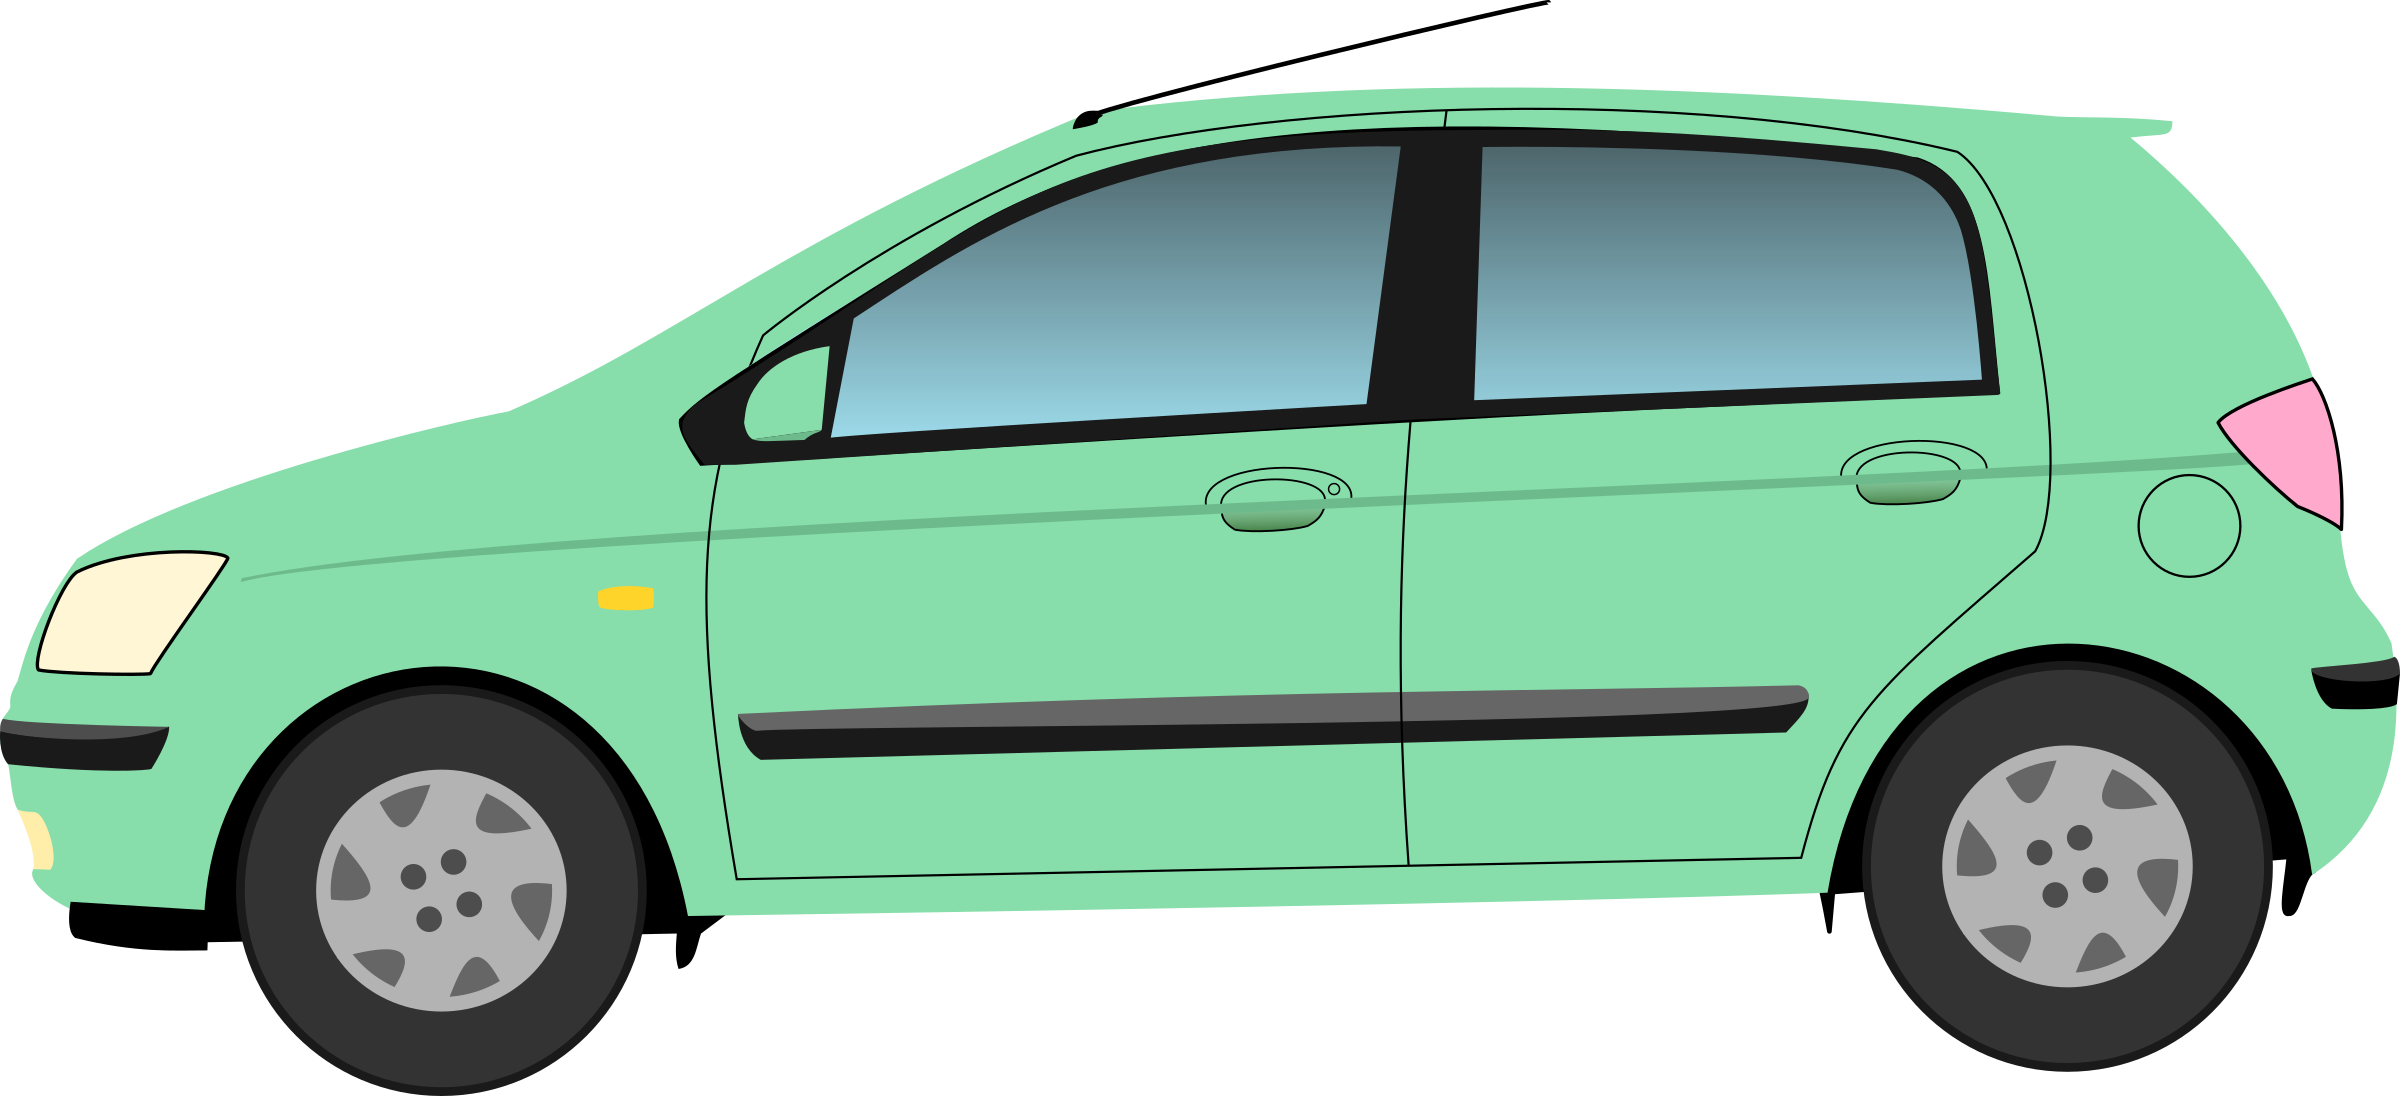 Car clipart green jpg library download Clipart - Hyundai Getz jpg library download